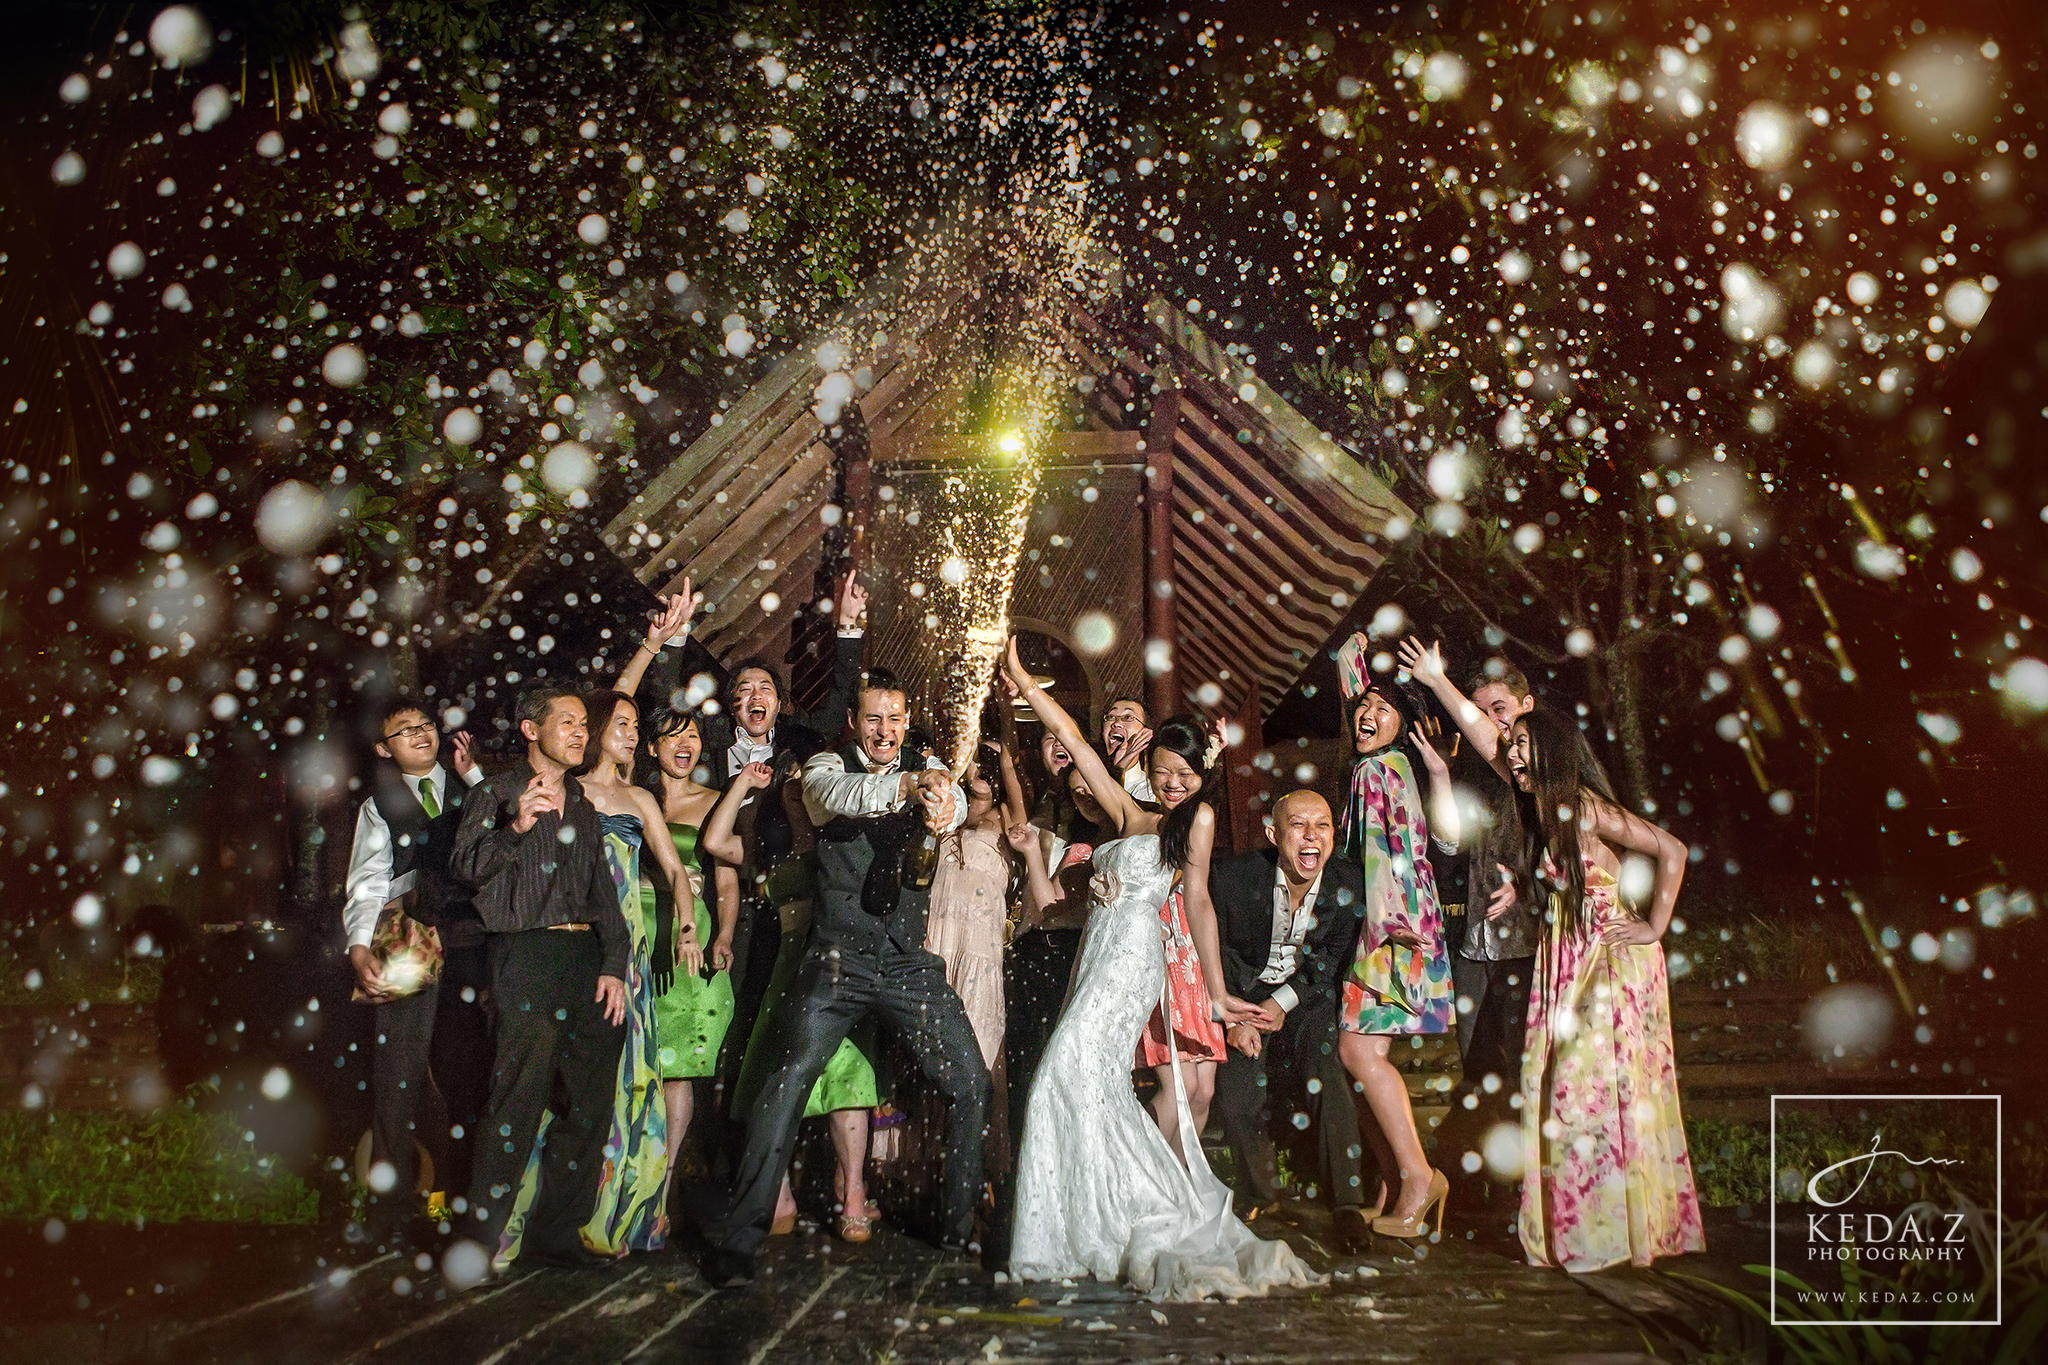 55 Creative Wedding Entourage Photo Ideas - 500px Blog